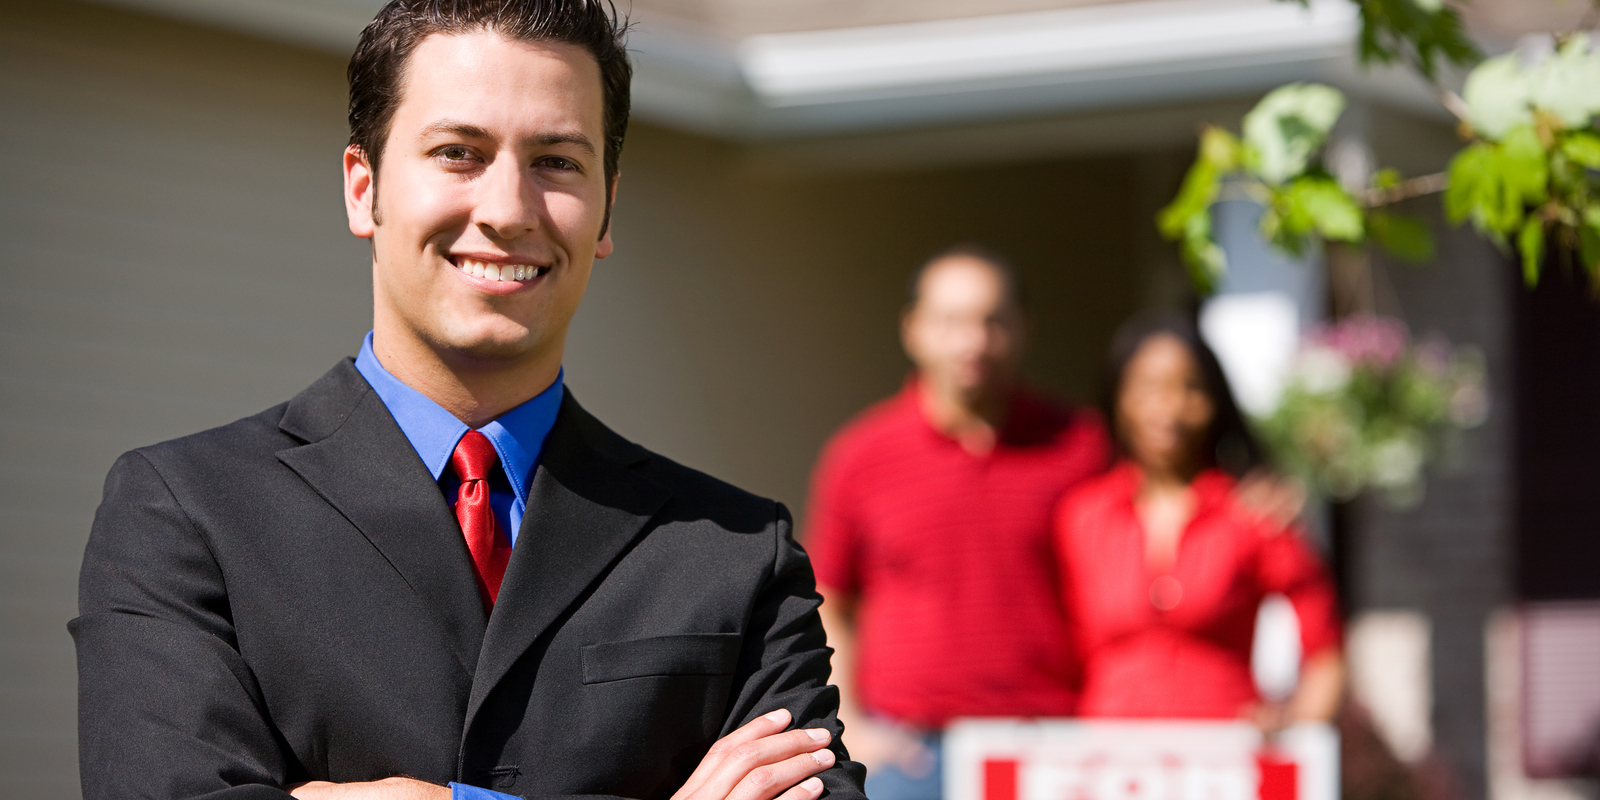 All You Need To Know About Hiring Real Estate Agents